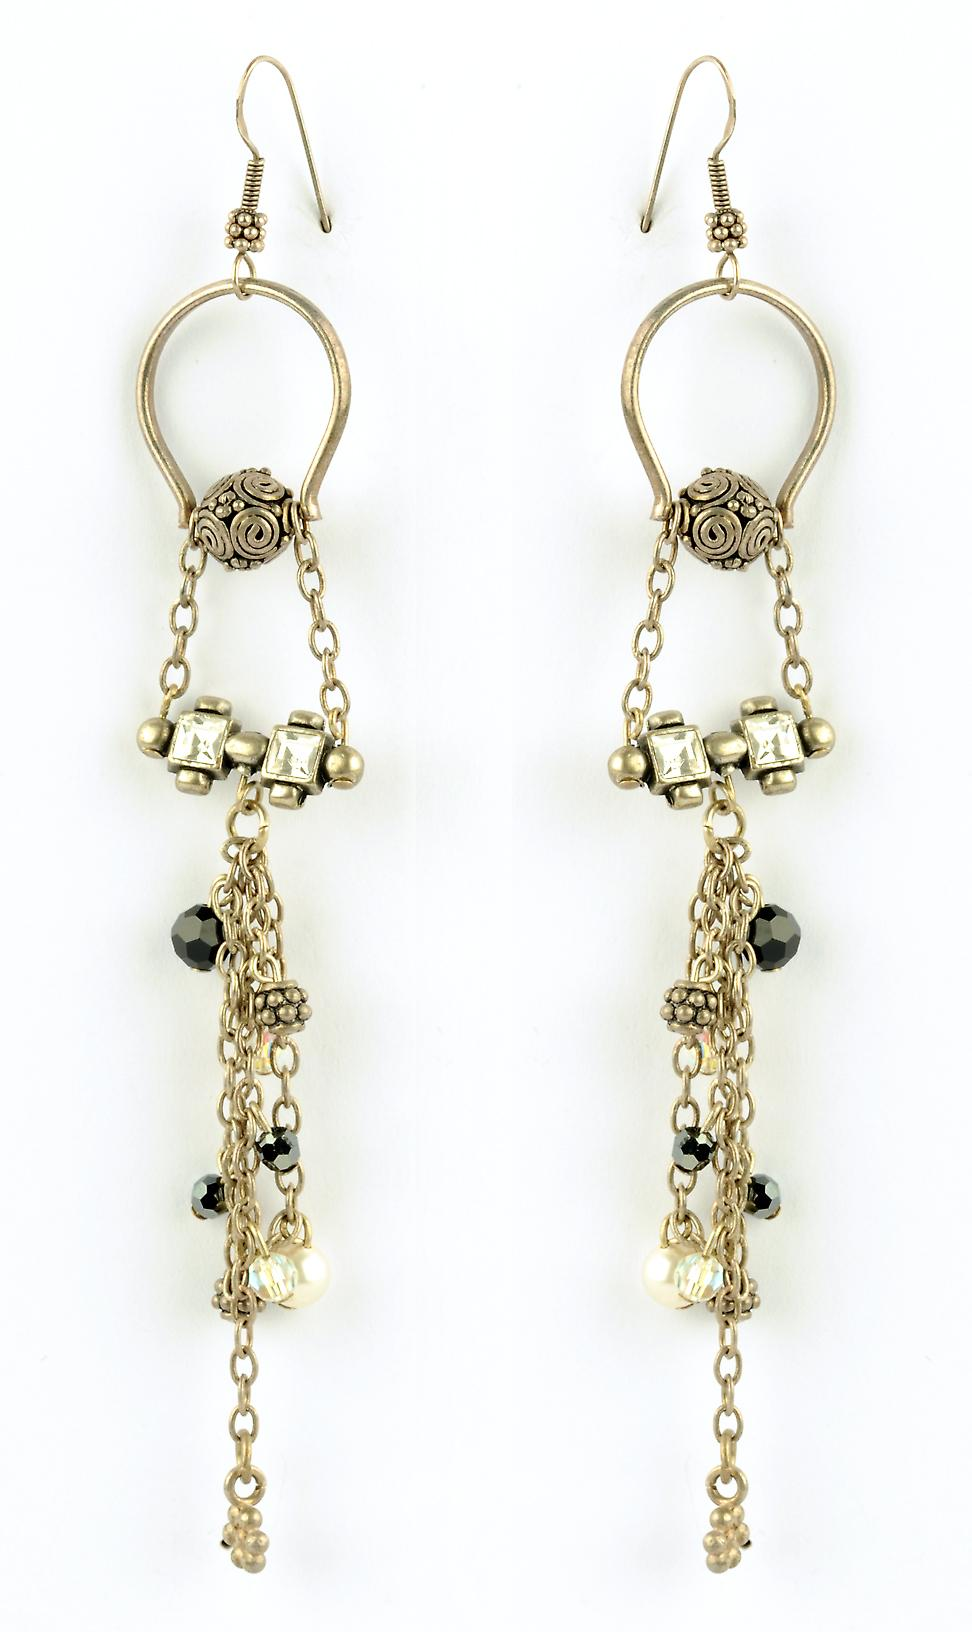 Waooh - Fashion Jewellery - WJ0790 - D'Oreille earrings with Swarovski Strass Black & White - Frame Colour Silver